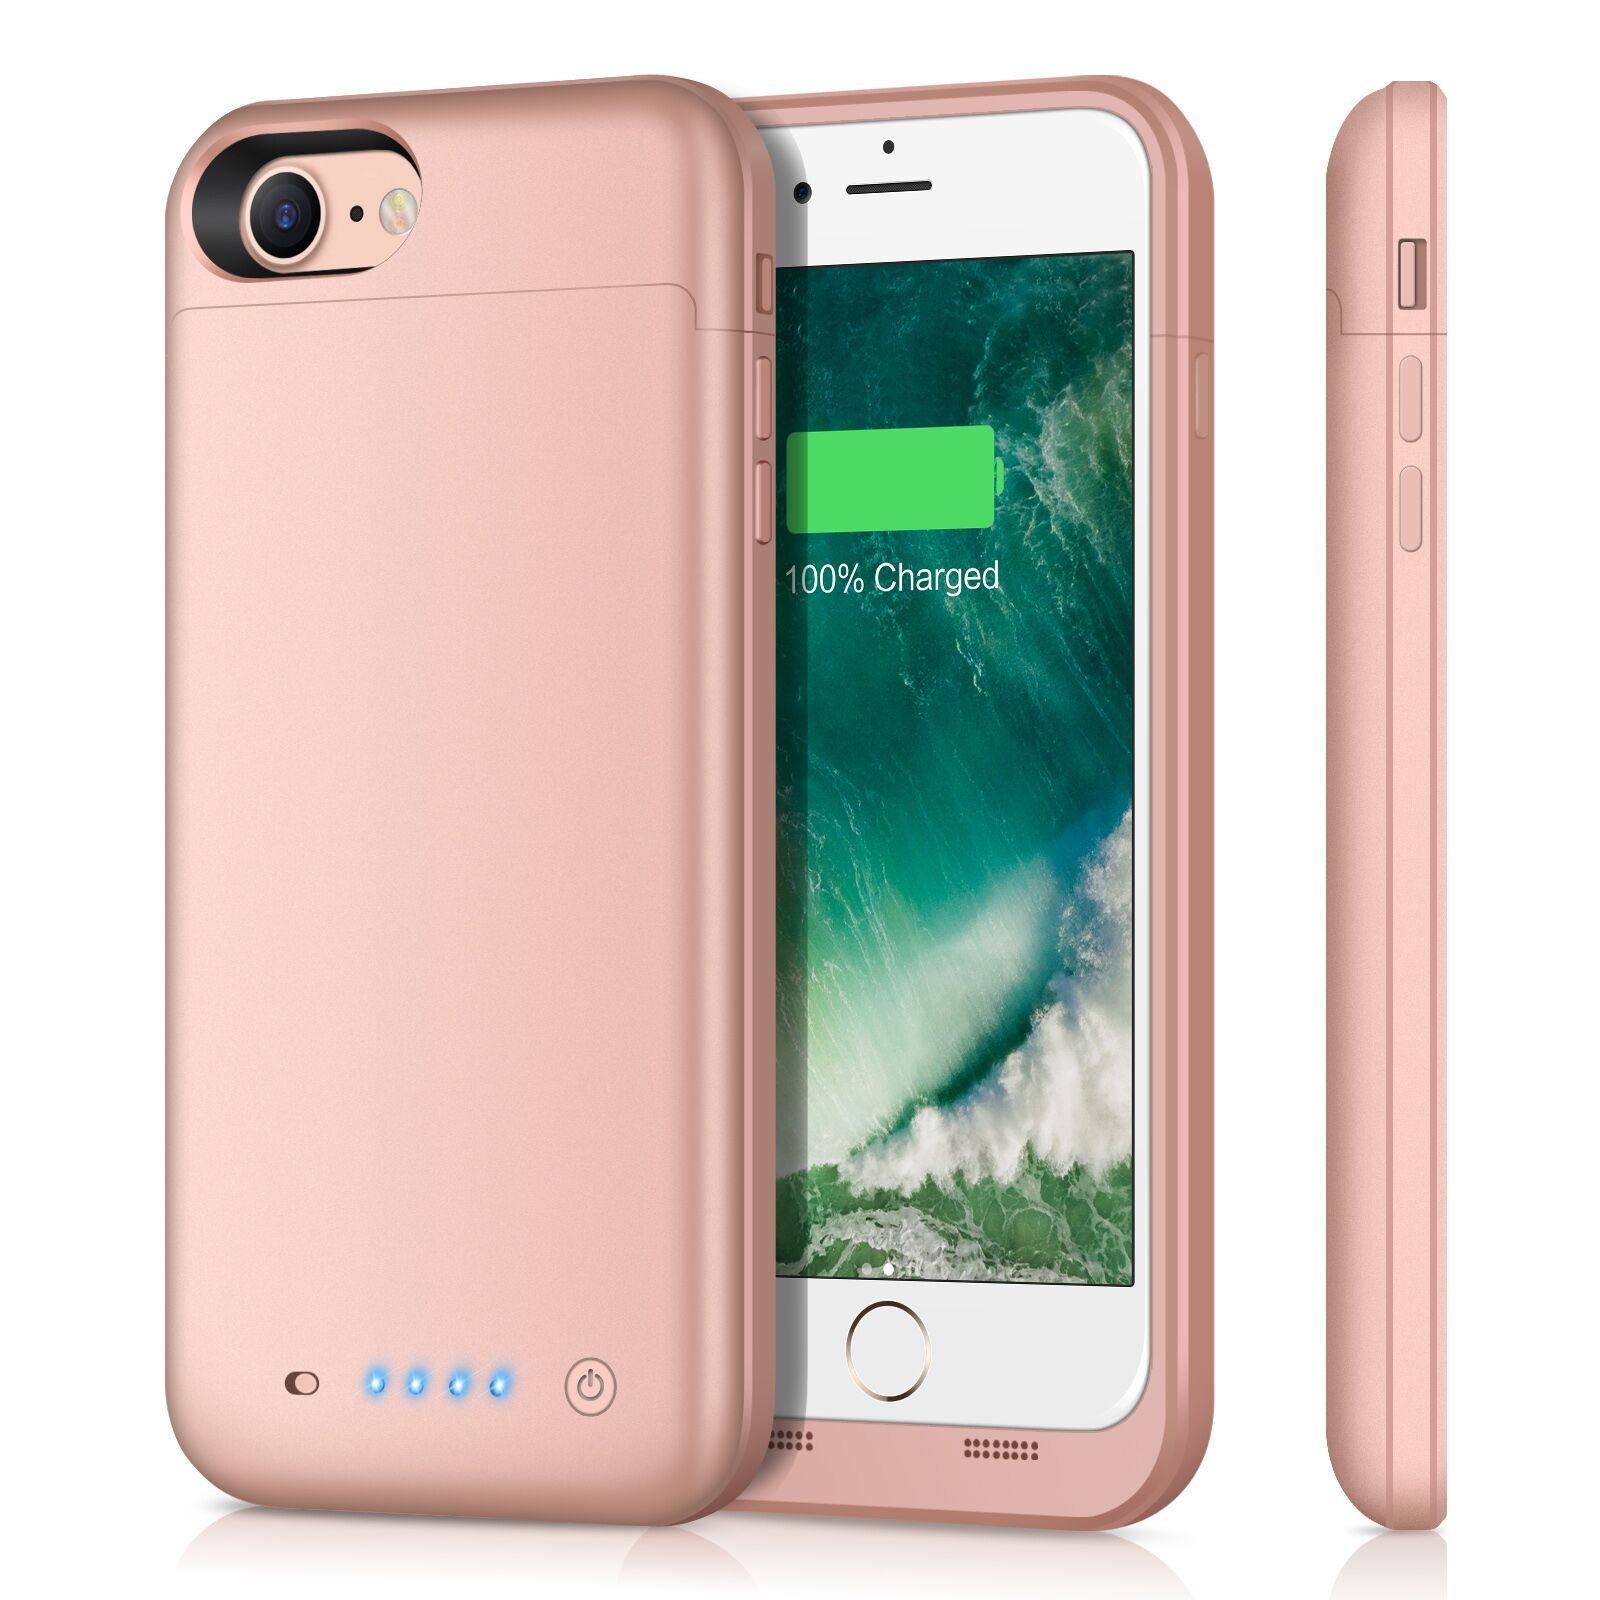 iPhone 8 7 Battery Case|iPosible 4500mAh Portable Slim Charging Cases for iPhone 7/8 (4.7inch) Extended Protective Bankup Pack Charger Cover-Rose Gold